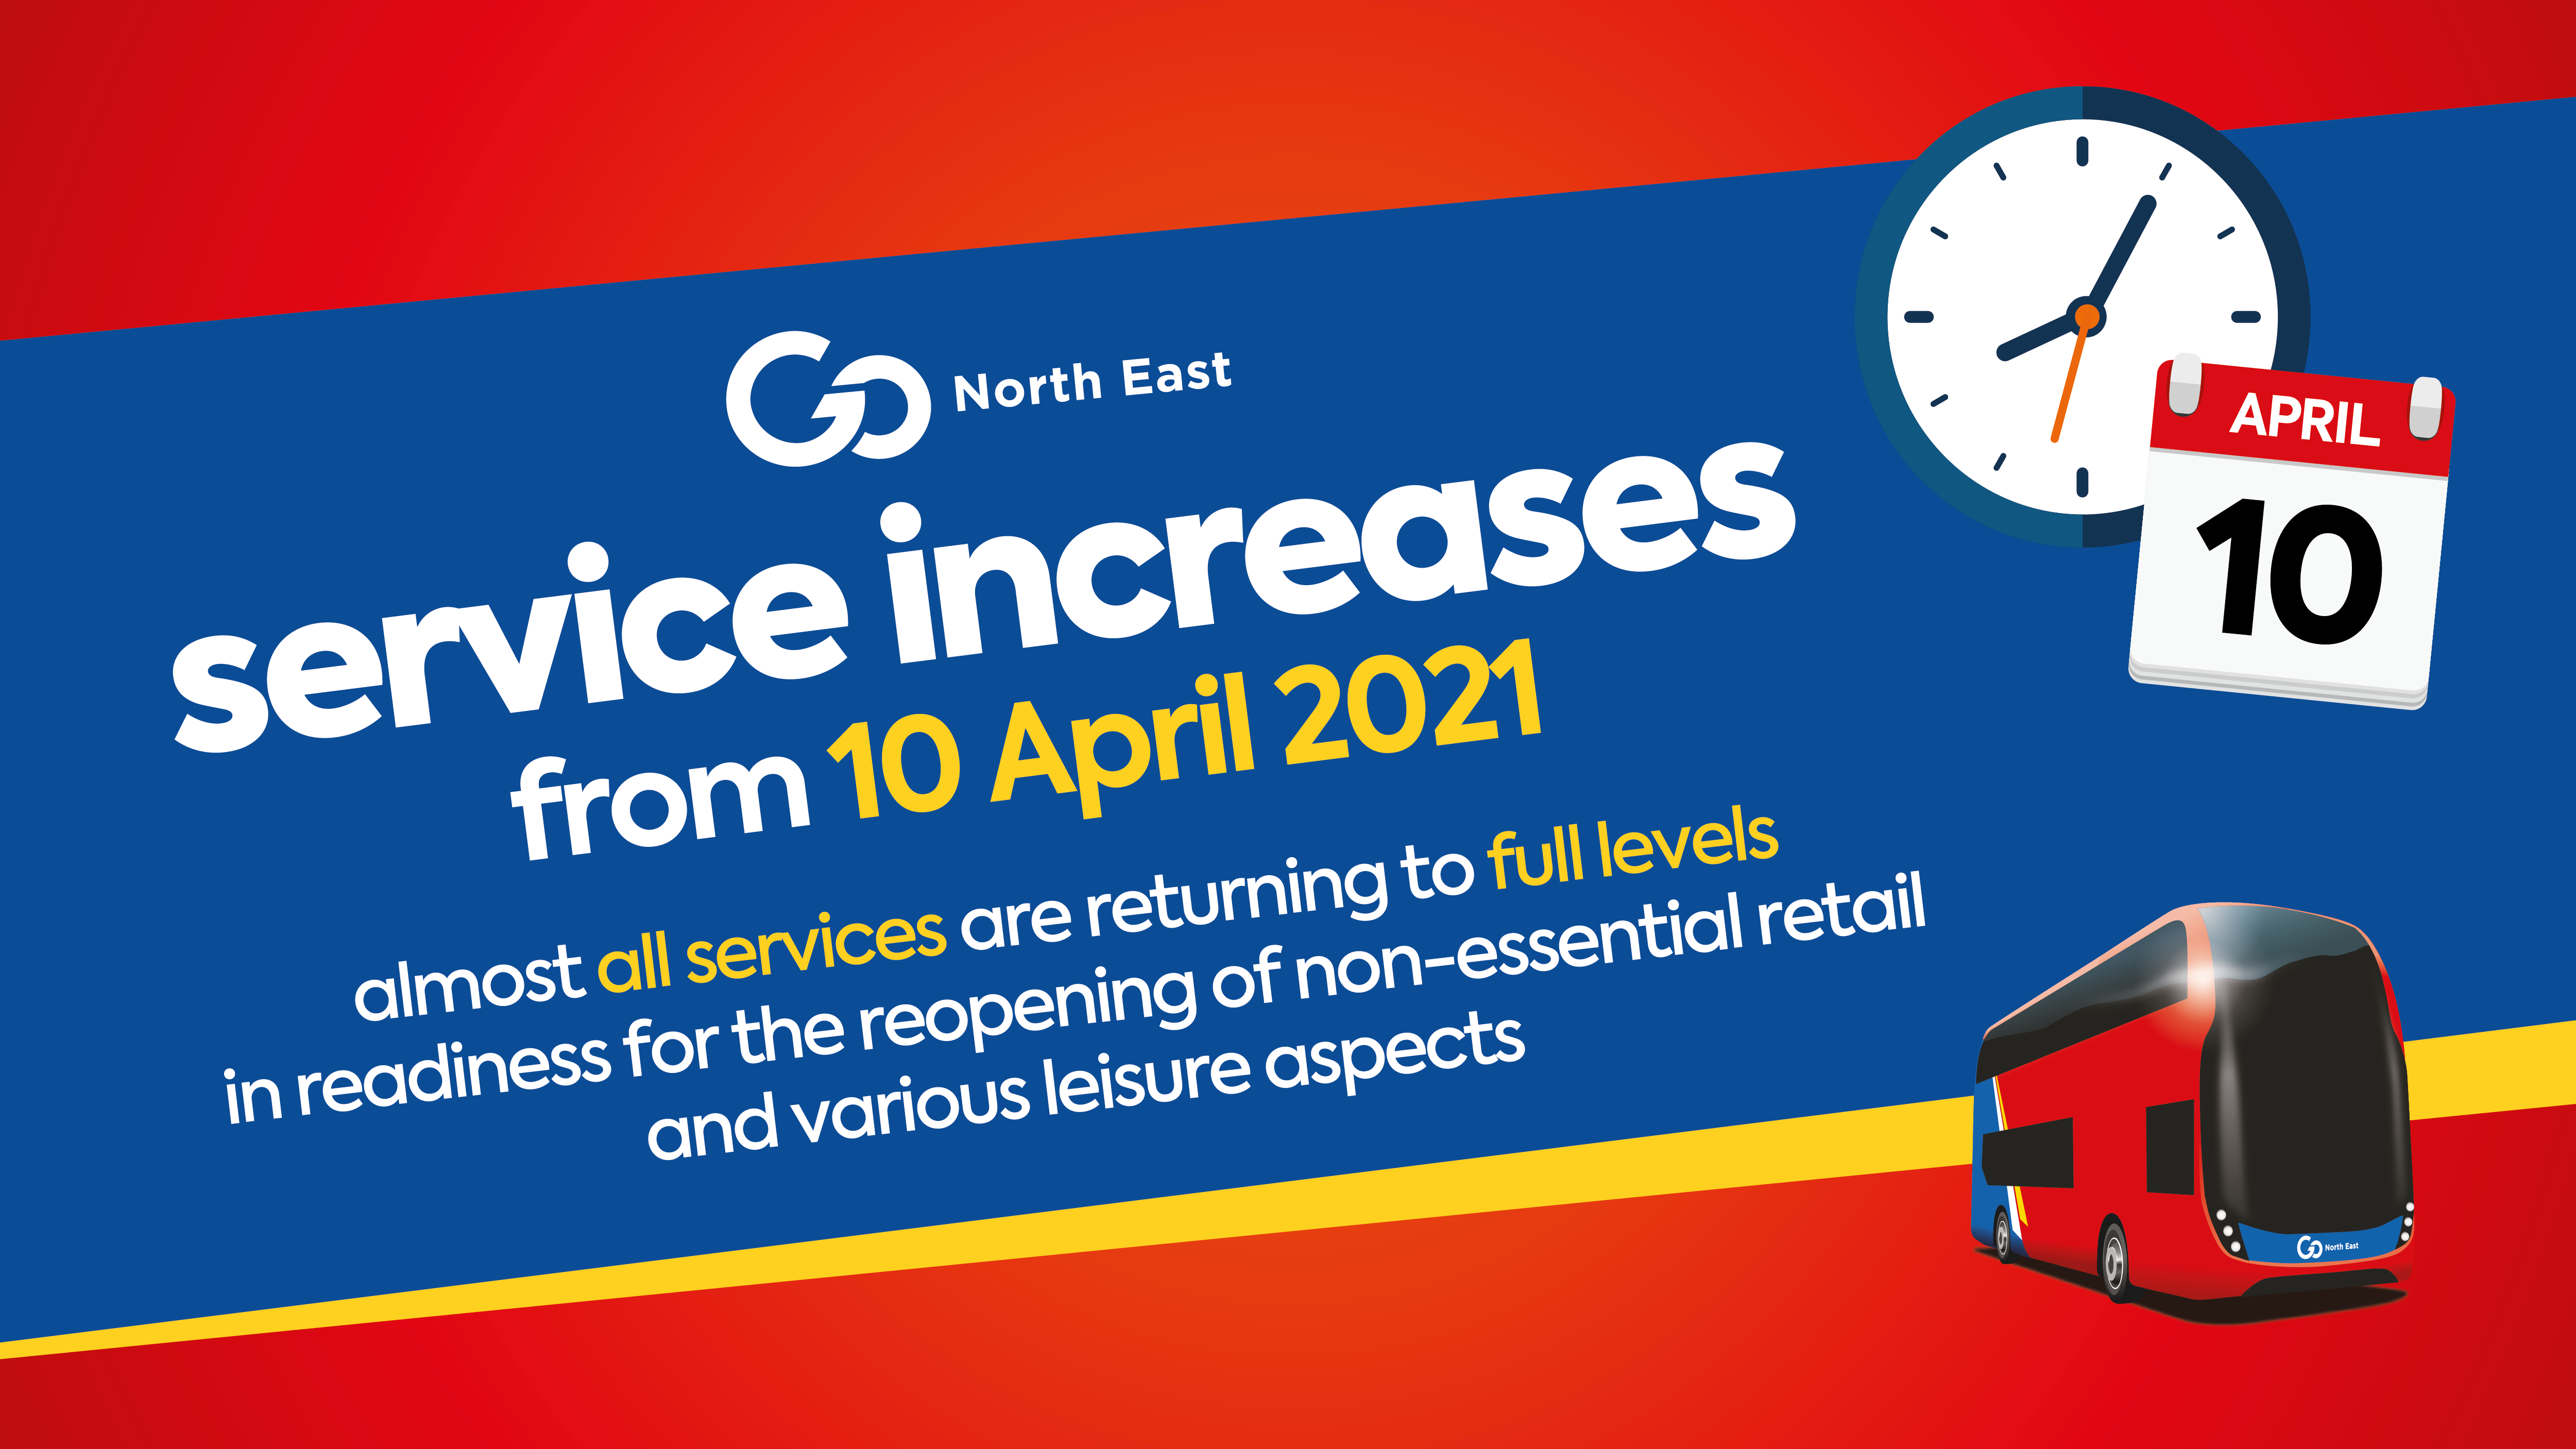 Service increases from 10 April